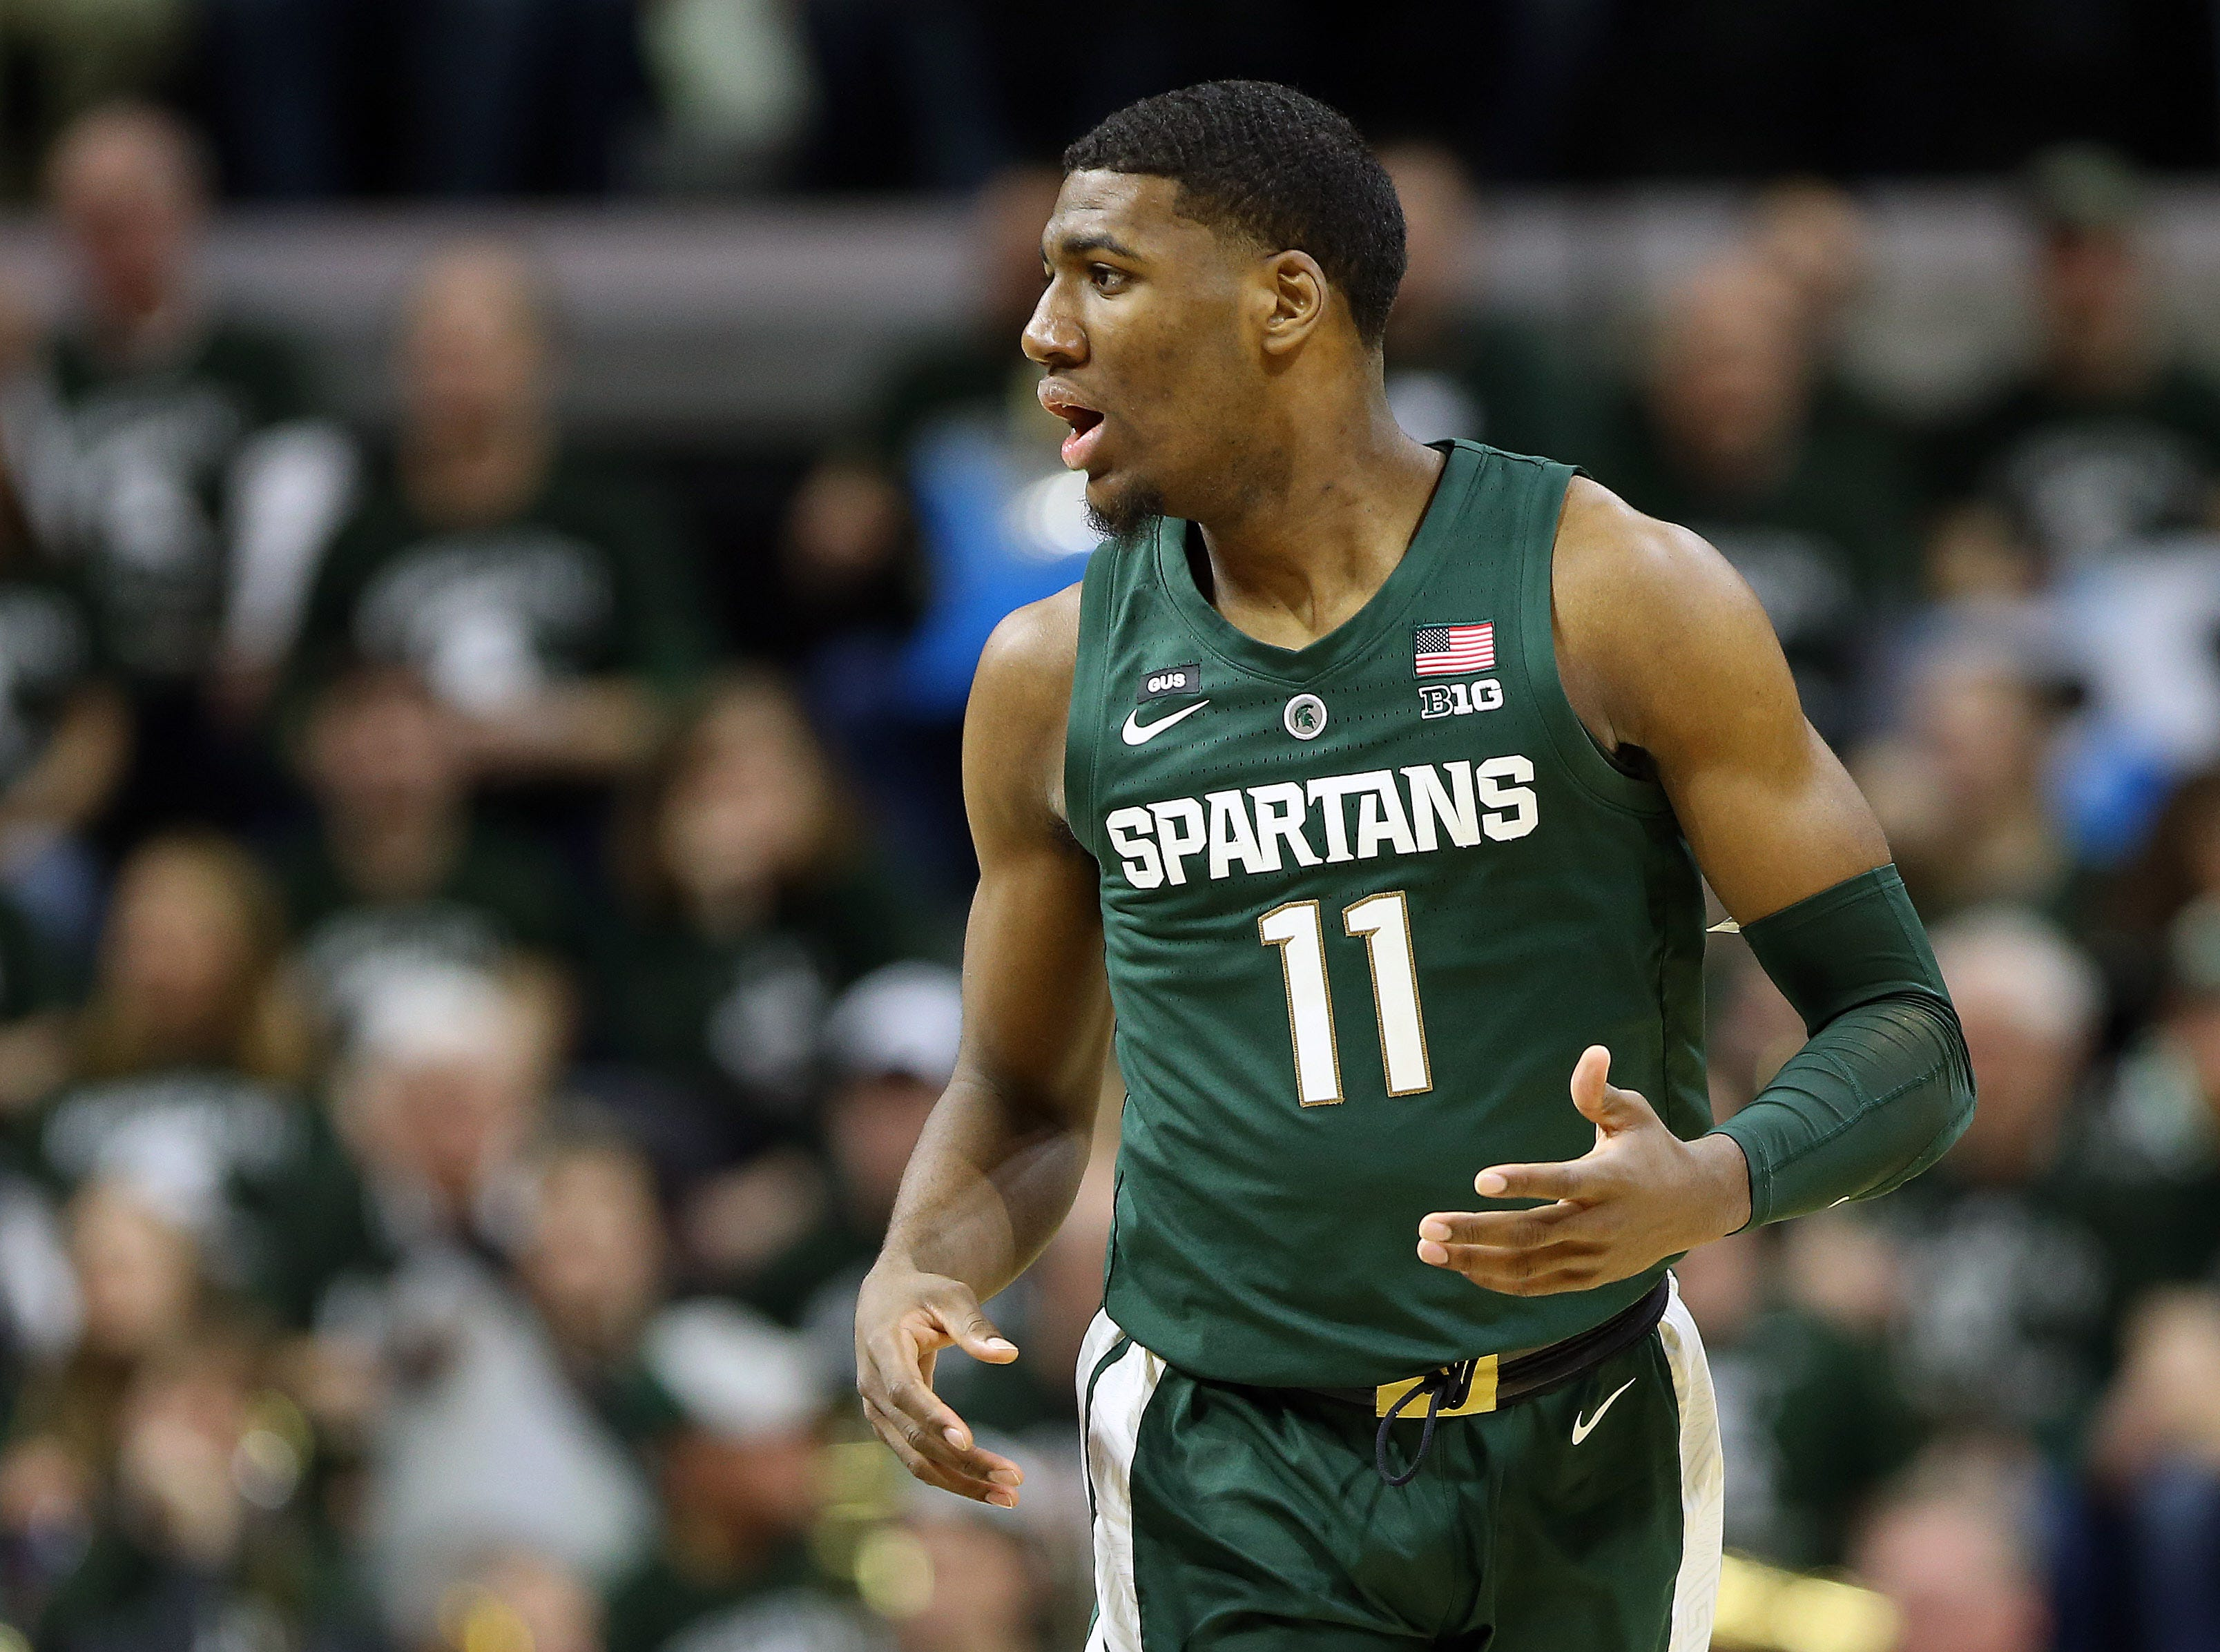 Mar 5, 2019; East Lansing, MI, USA; Michigan State Spartans forward Aaron Henry (11) gestures during the second half against the Nebraska Cornhuskers at the Breslin Center. Mandatory Credit: Mike Carter-USA TODAY Sports